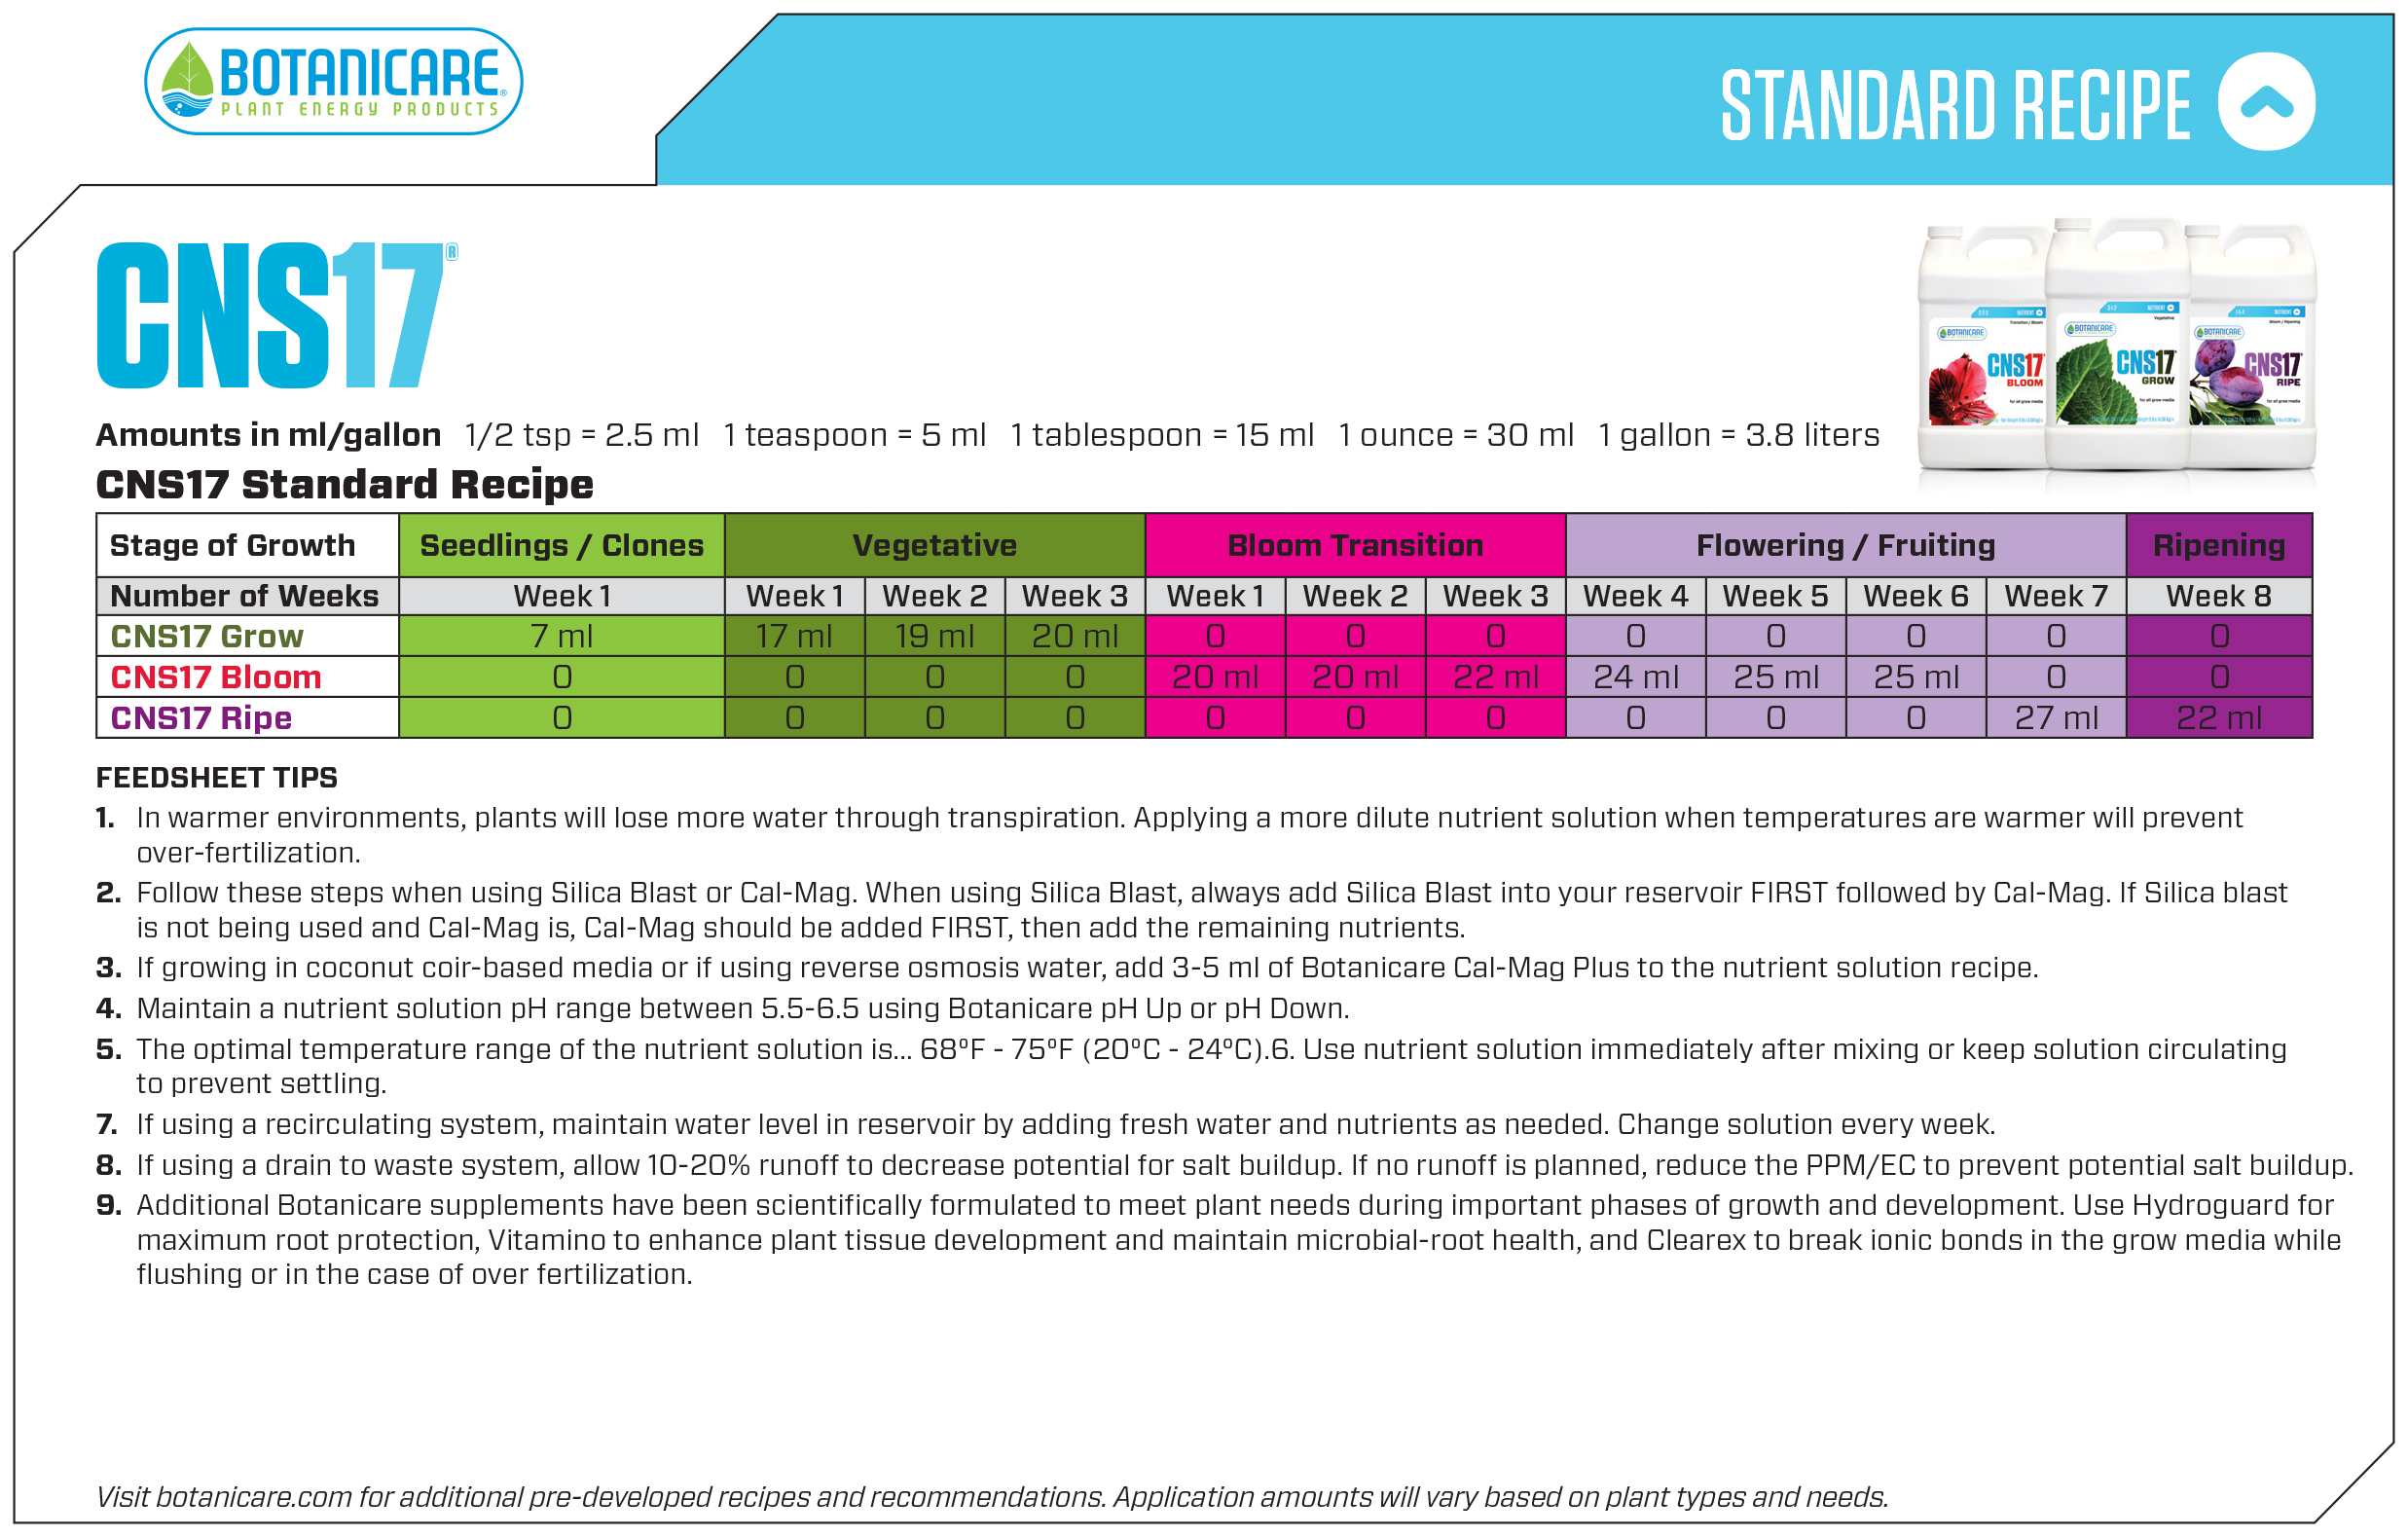 Botanicare Feedsheets/Nutrient Charts